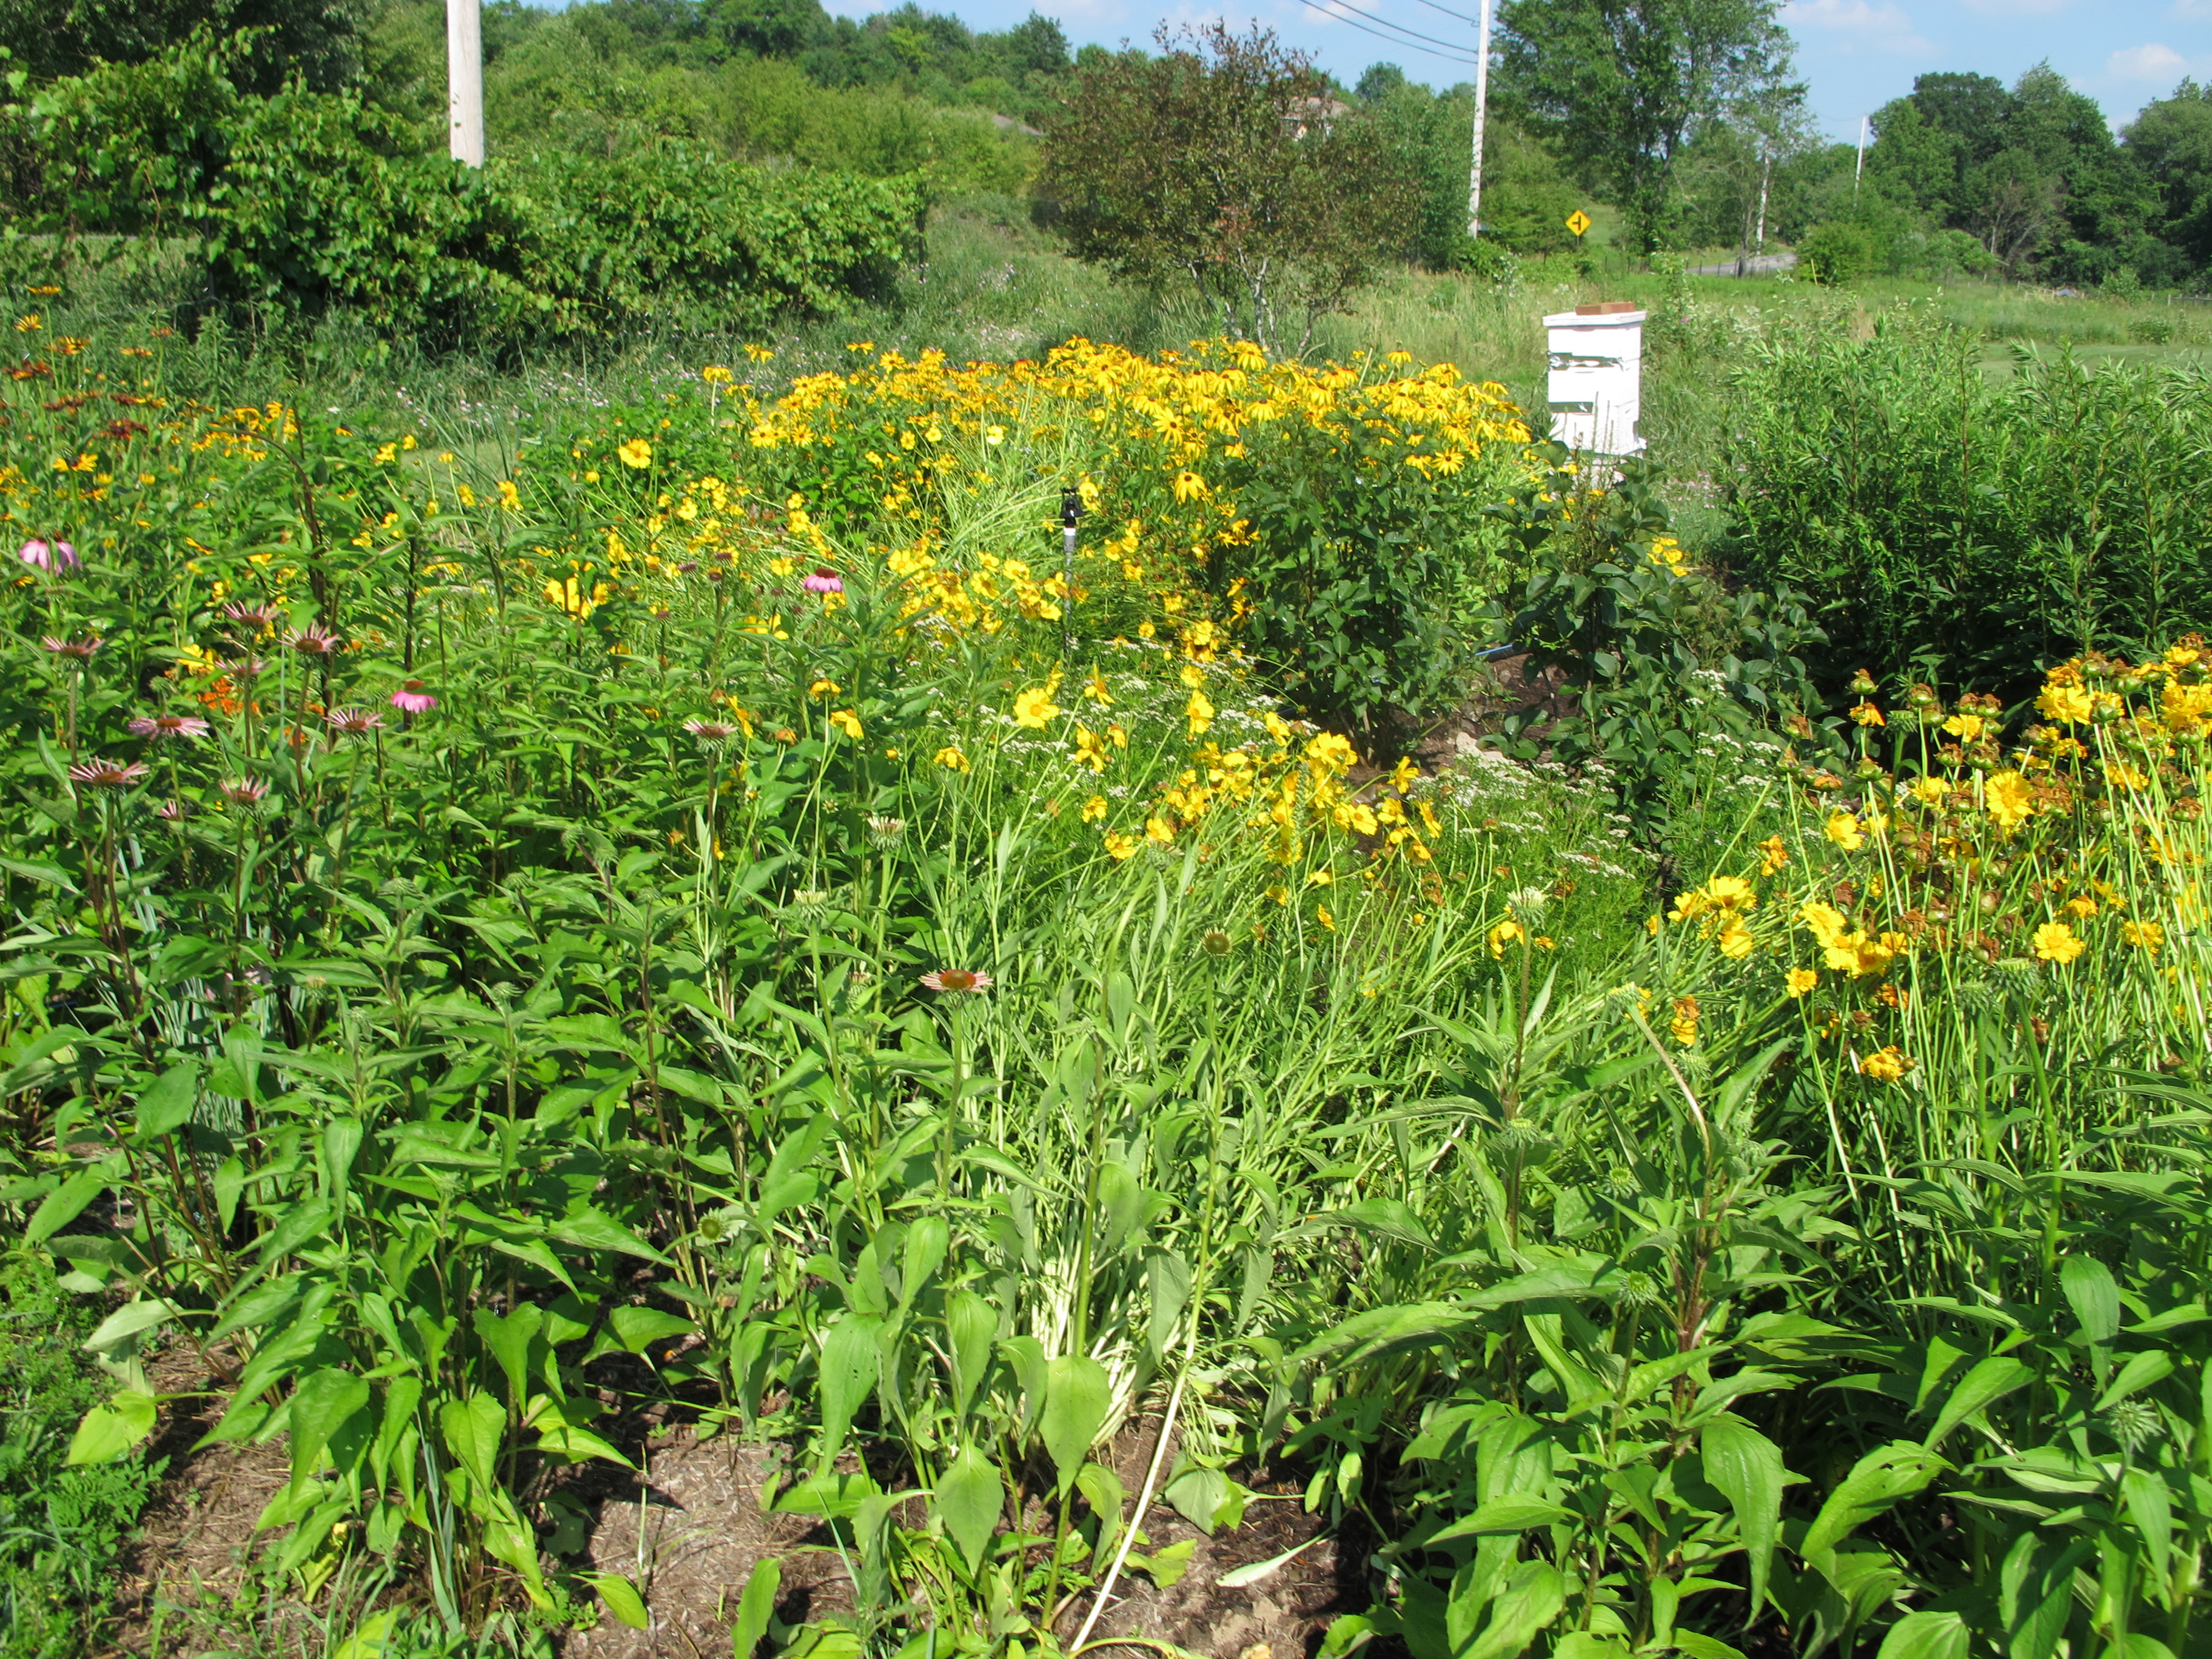 pollinator path bursting with plants and colorful flowers